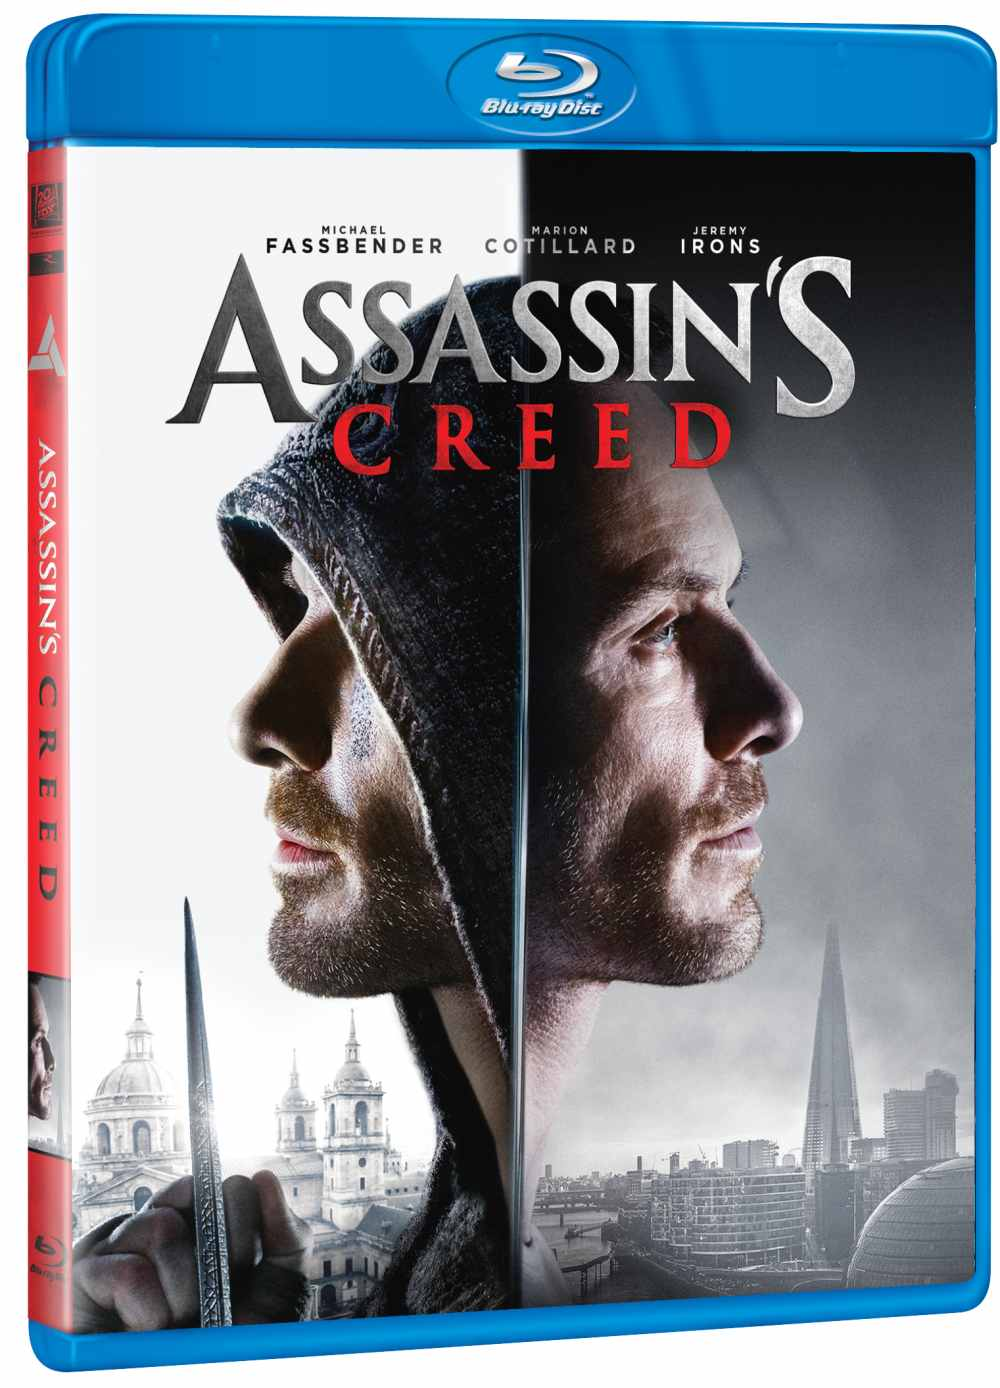 ASSASSINS CREED - Blu-ray